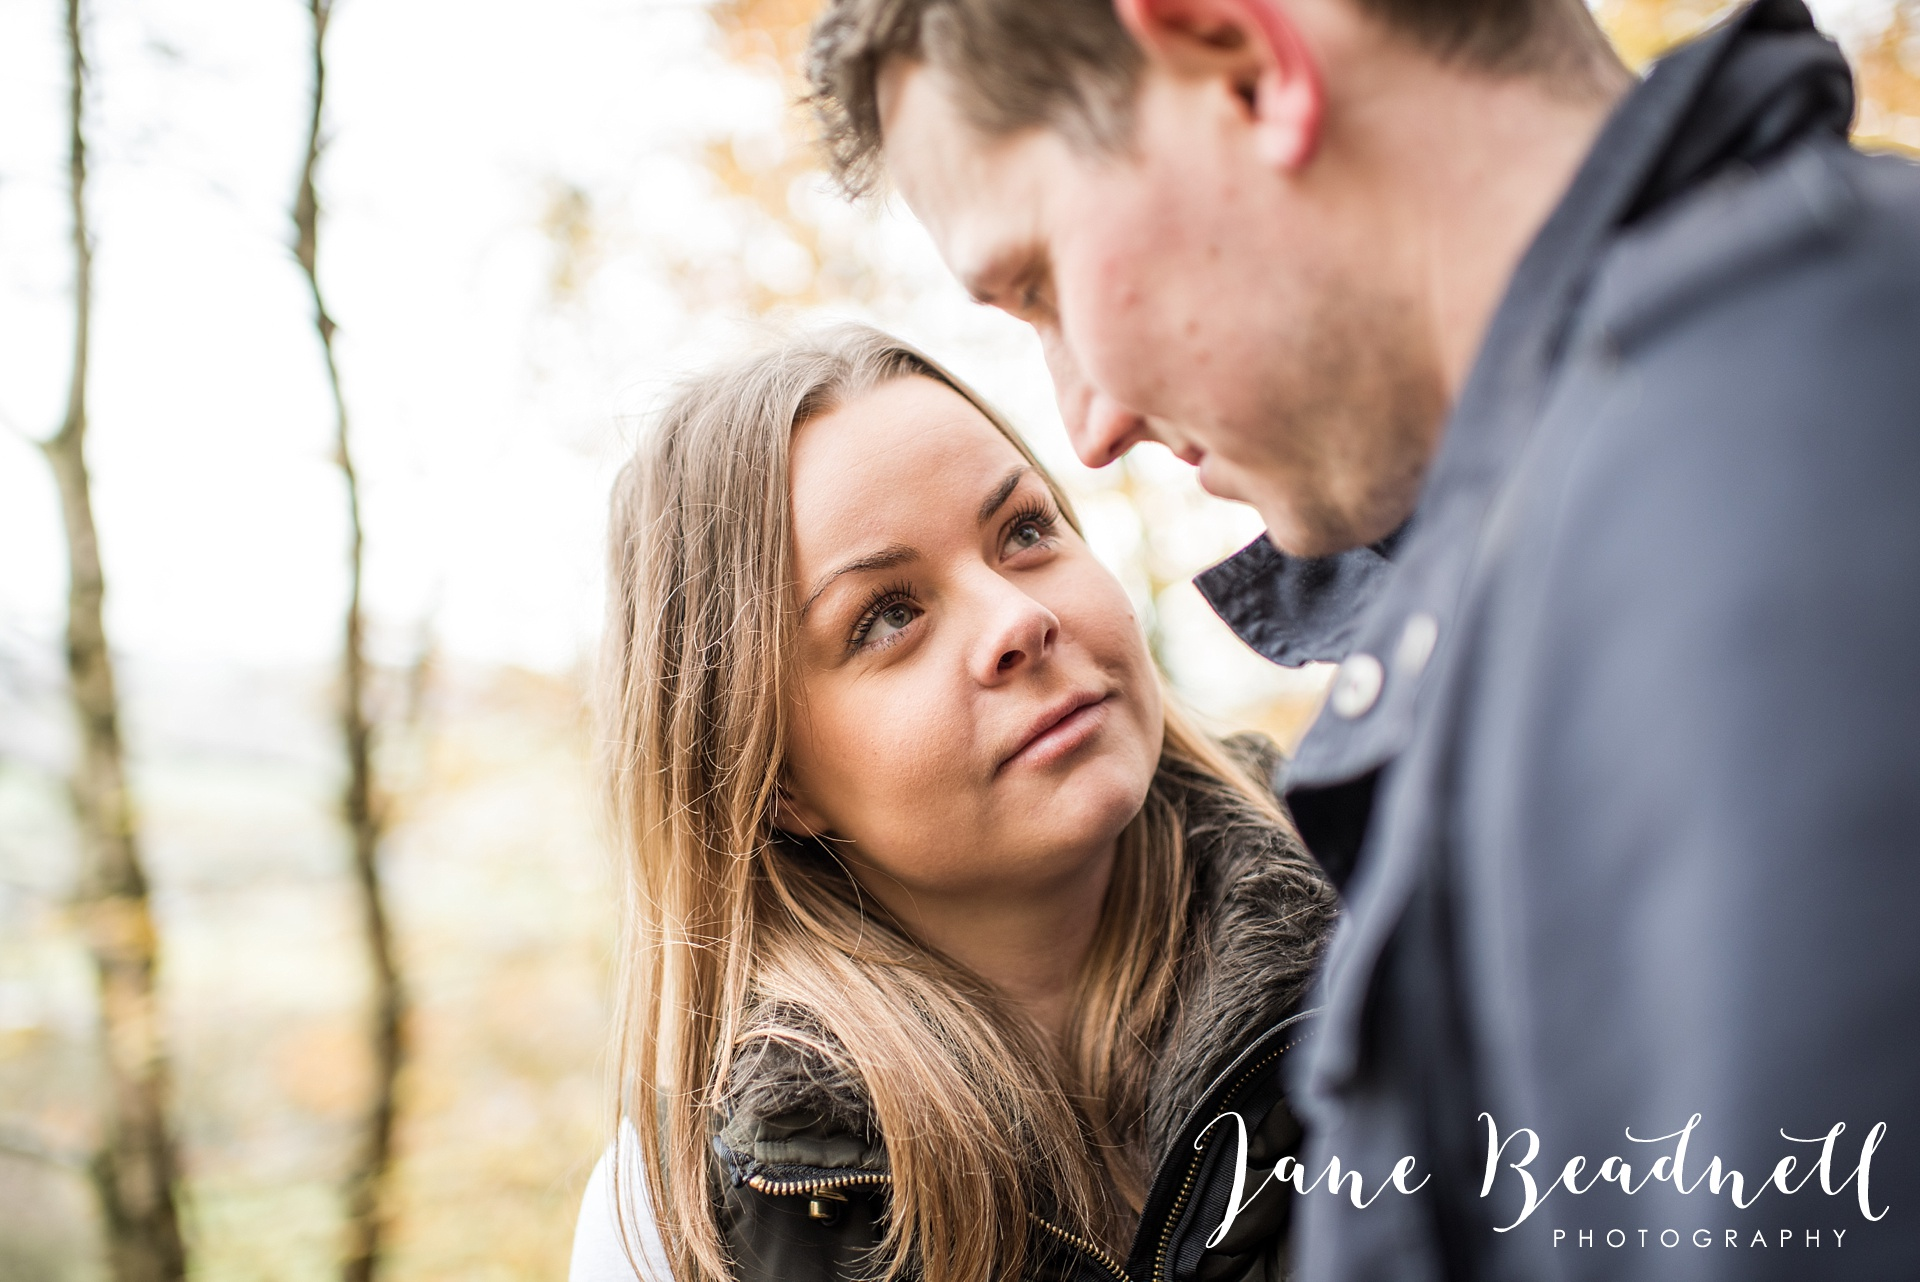 engagement-shoot-yorkshire-wedding-photographer-jane-beadnell-photography-uk-and-destination-wedding-photographer-engagement-shoot_0049